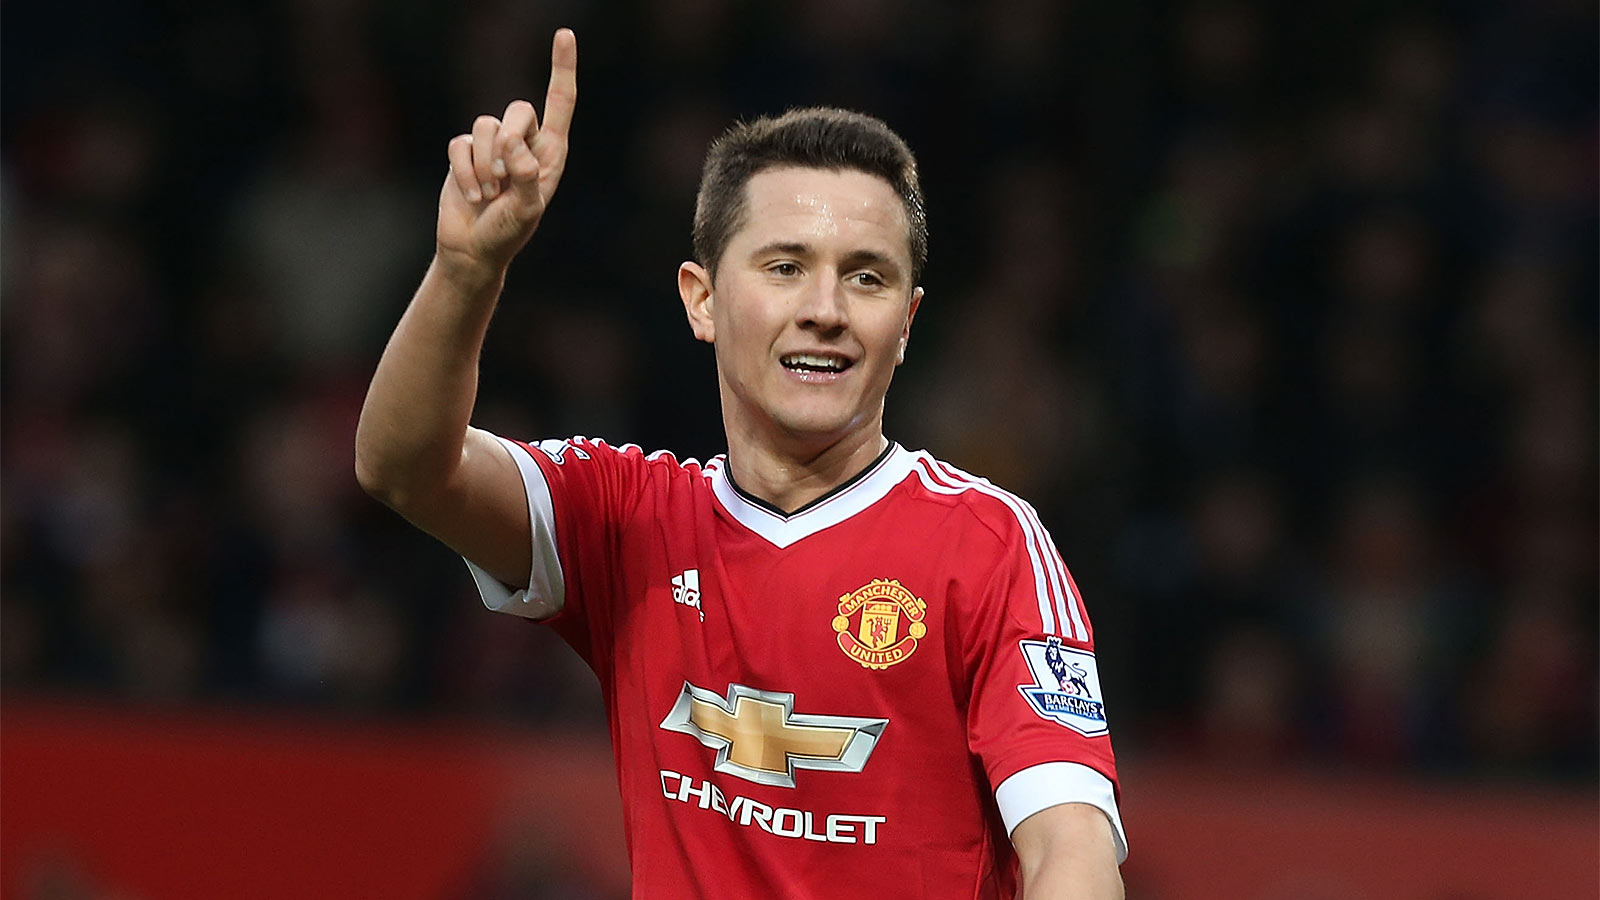 Herrera accuses Arsenal star Ozil of lacking consistency